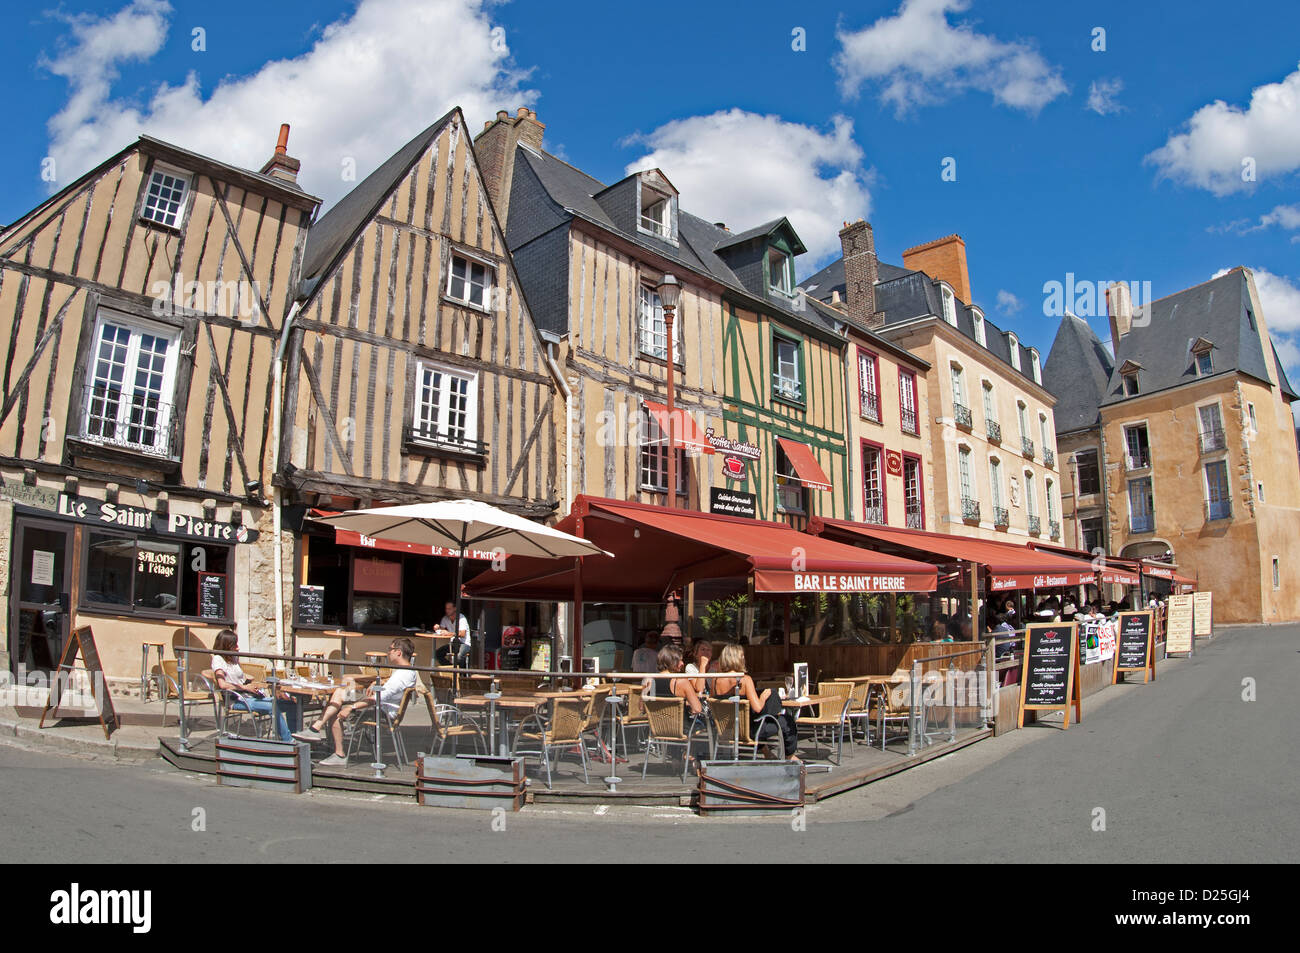 Bars in the Place de l'Aliberte in Le Mans in the Sarthe (72) departement of France Stock Photo